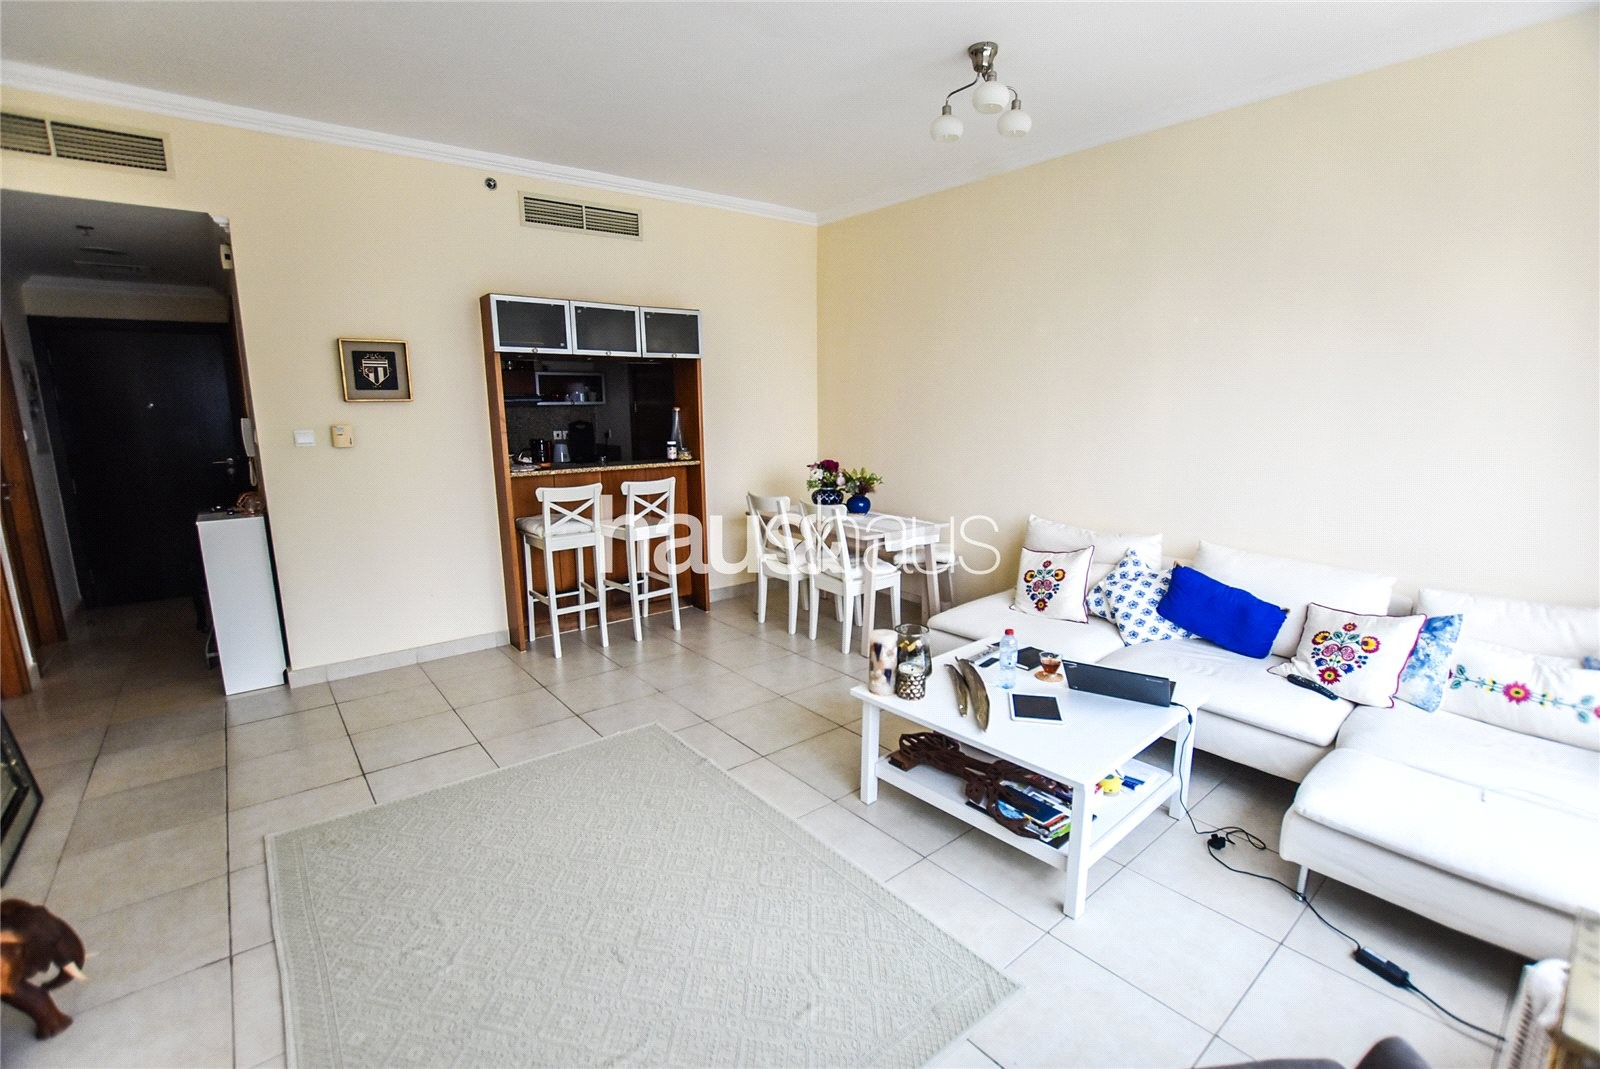 Unfurnished 1 BR | 13 Month Contract Available